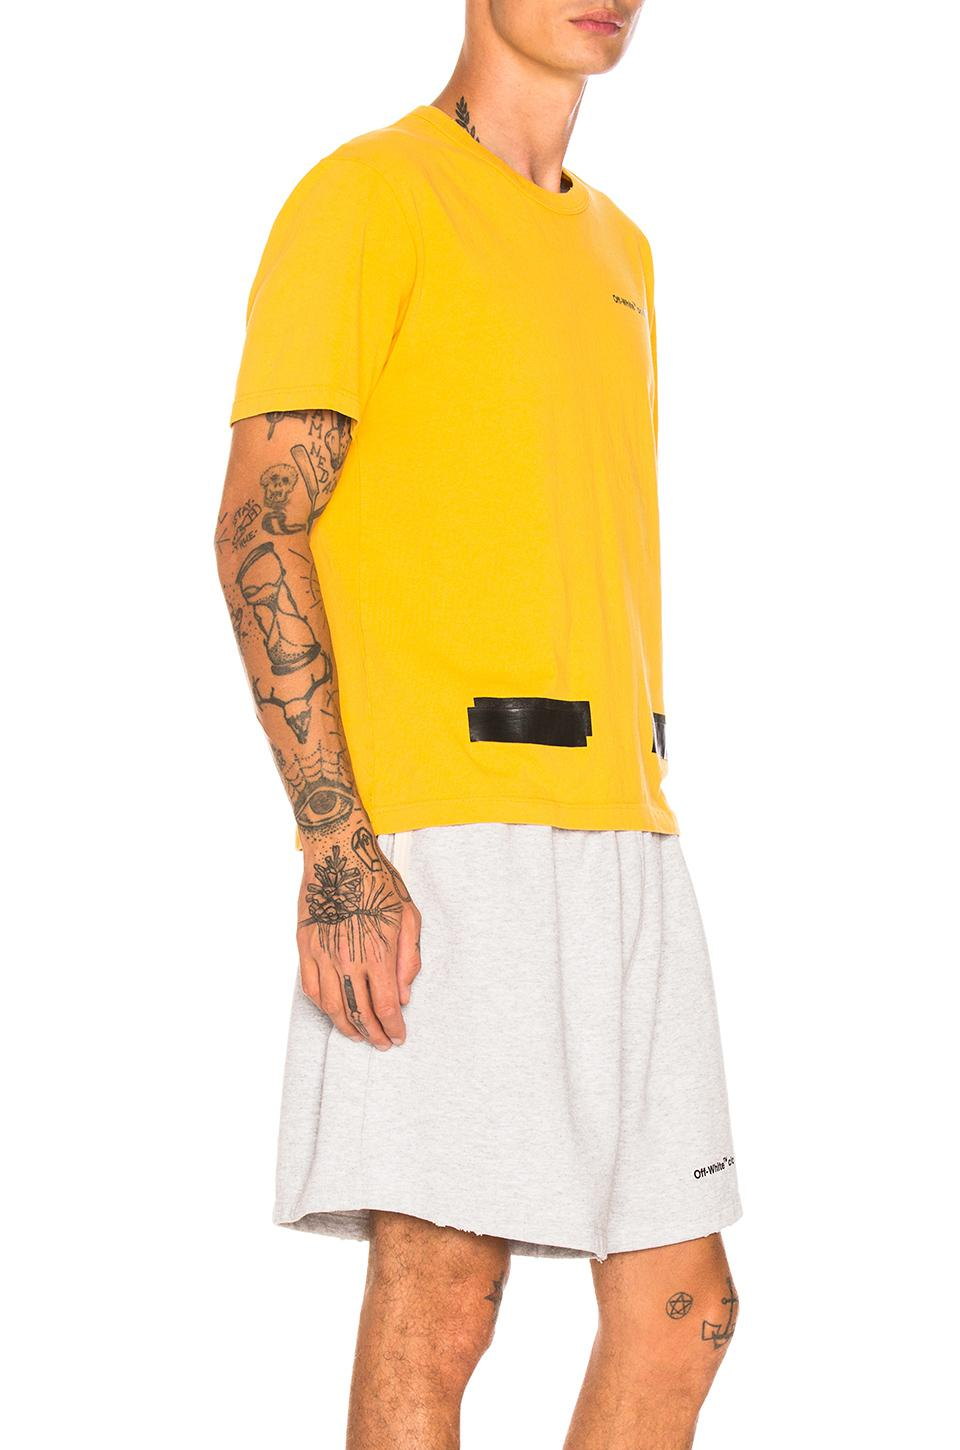 46361776 Off-White c/o Virgil Abloh Champion Tee in Yellow for Men - Lyst